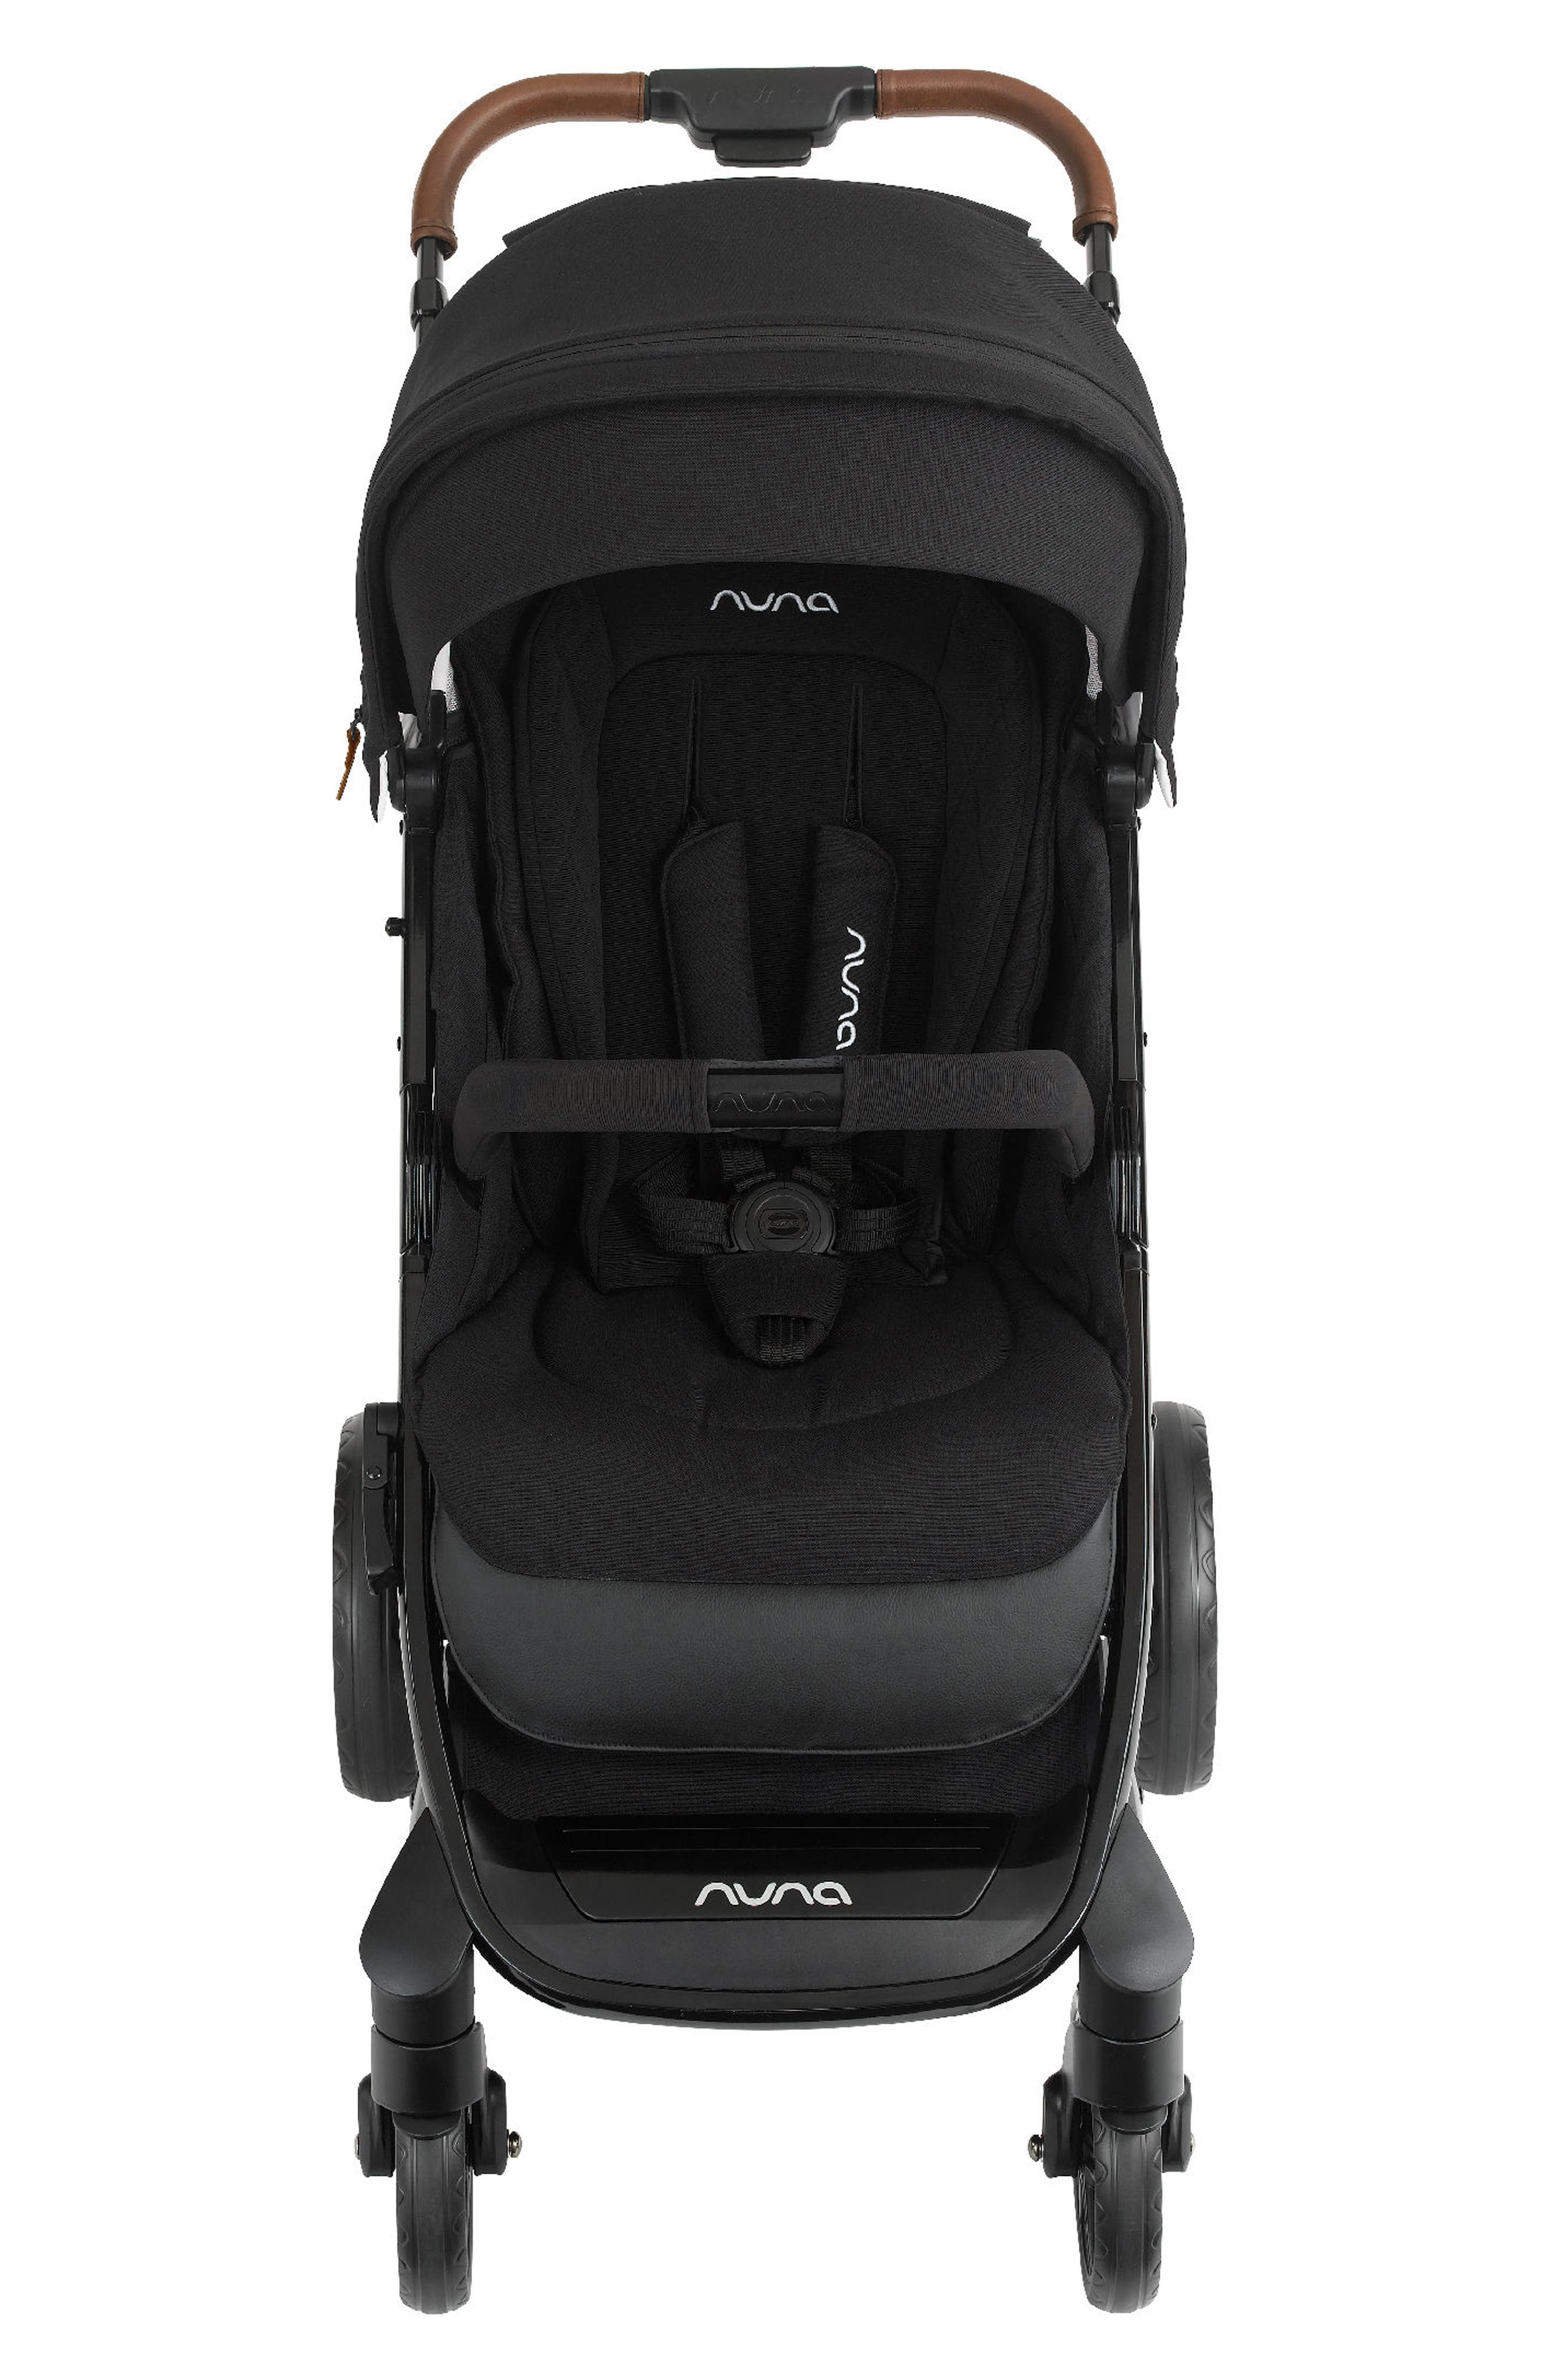 2019 TAVO<sup>™</sup> Stroller & PIPA<sup>™</sup> Lite LX Car Seat Travel System,                             Alternate thumbnail 8, color,                             CAVIAR